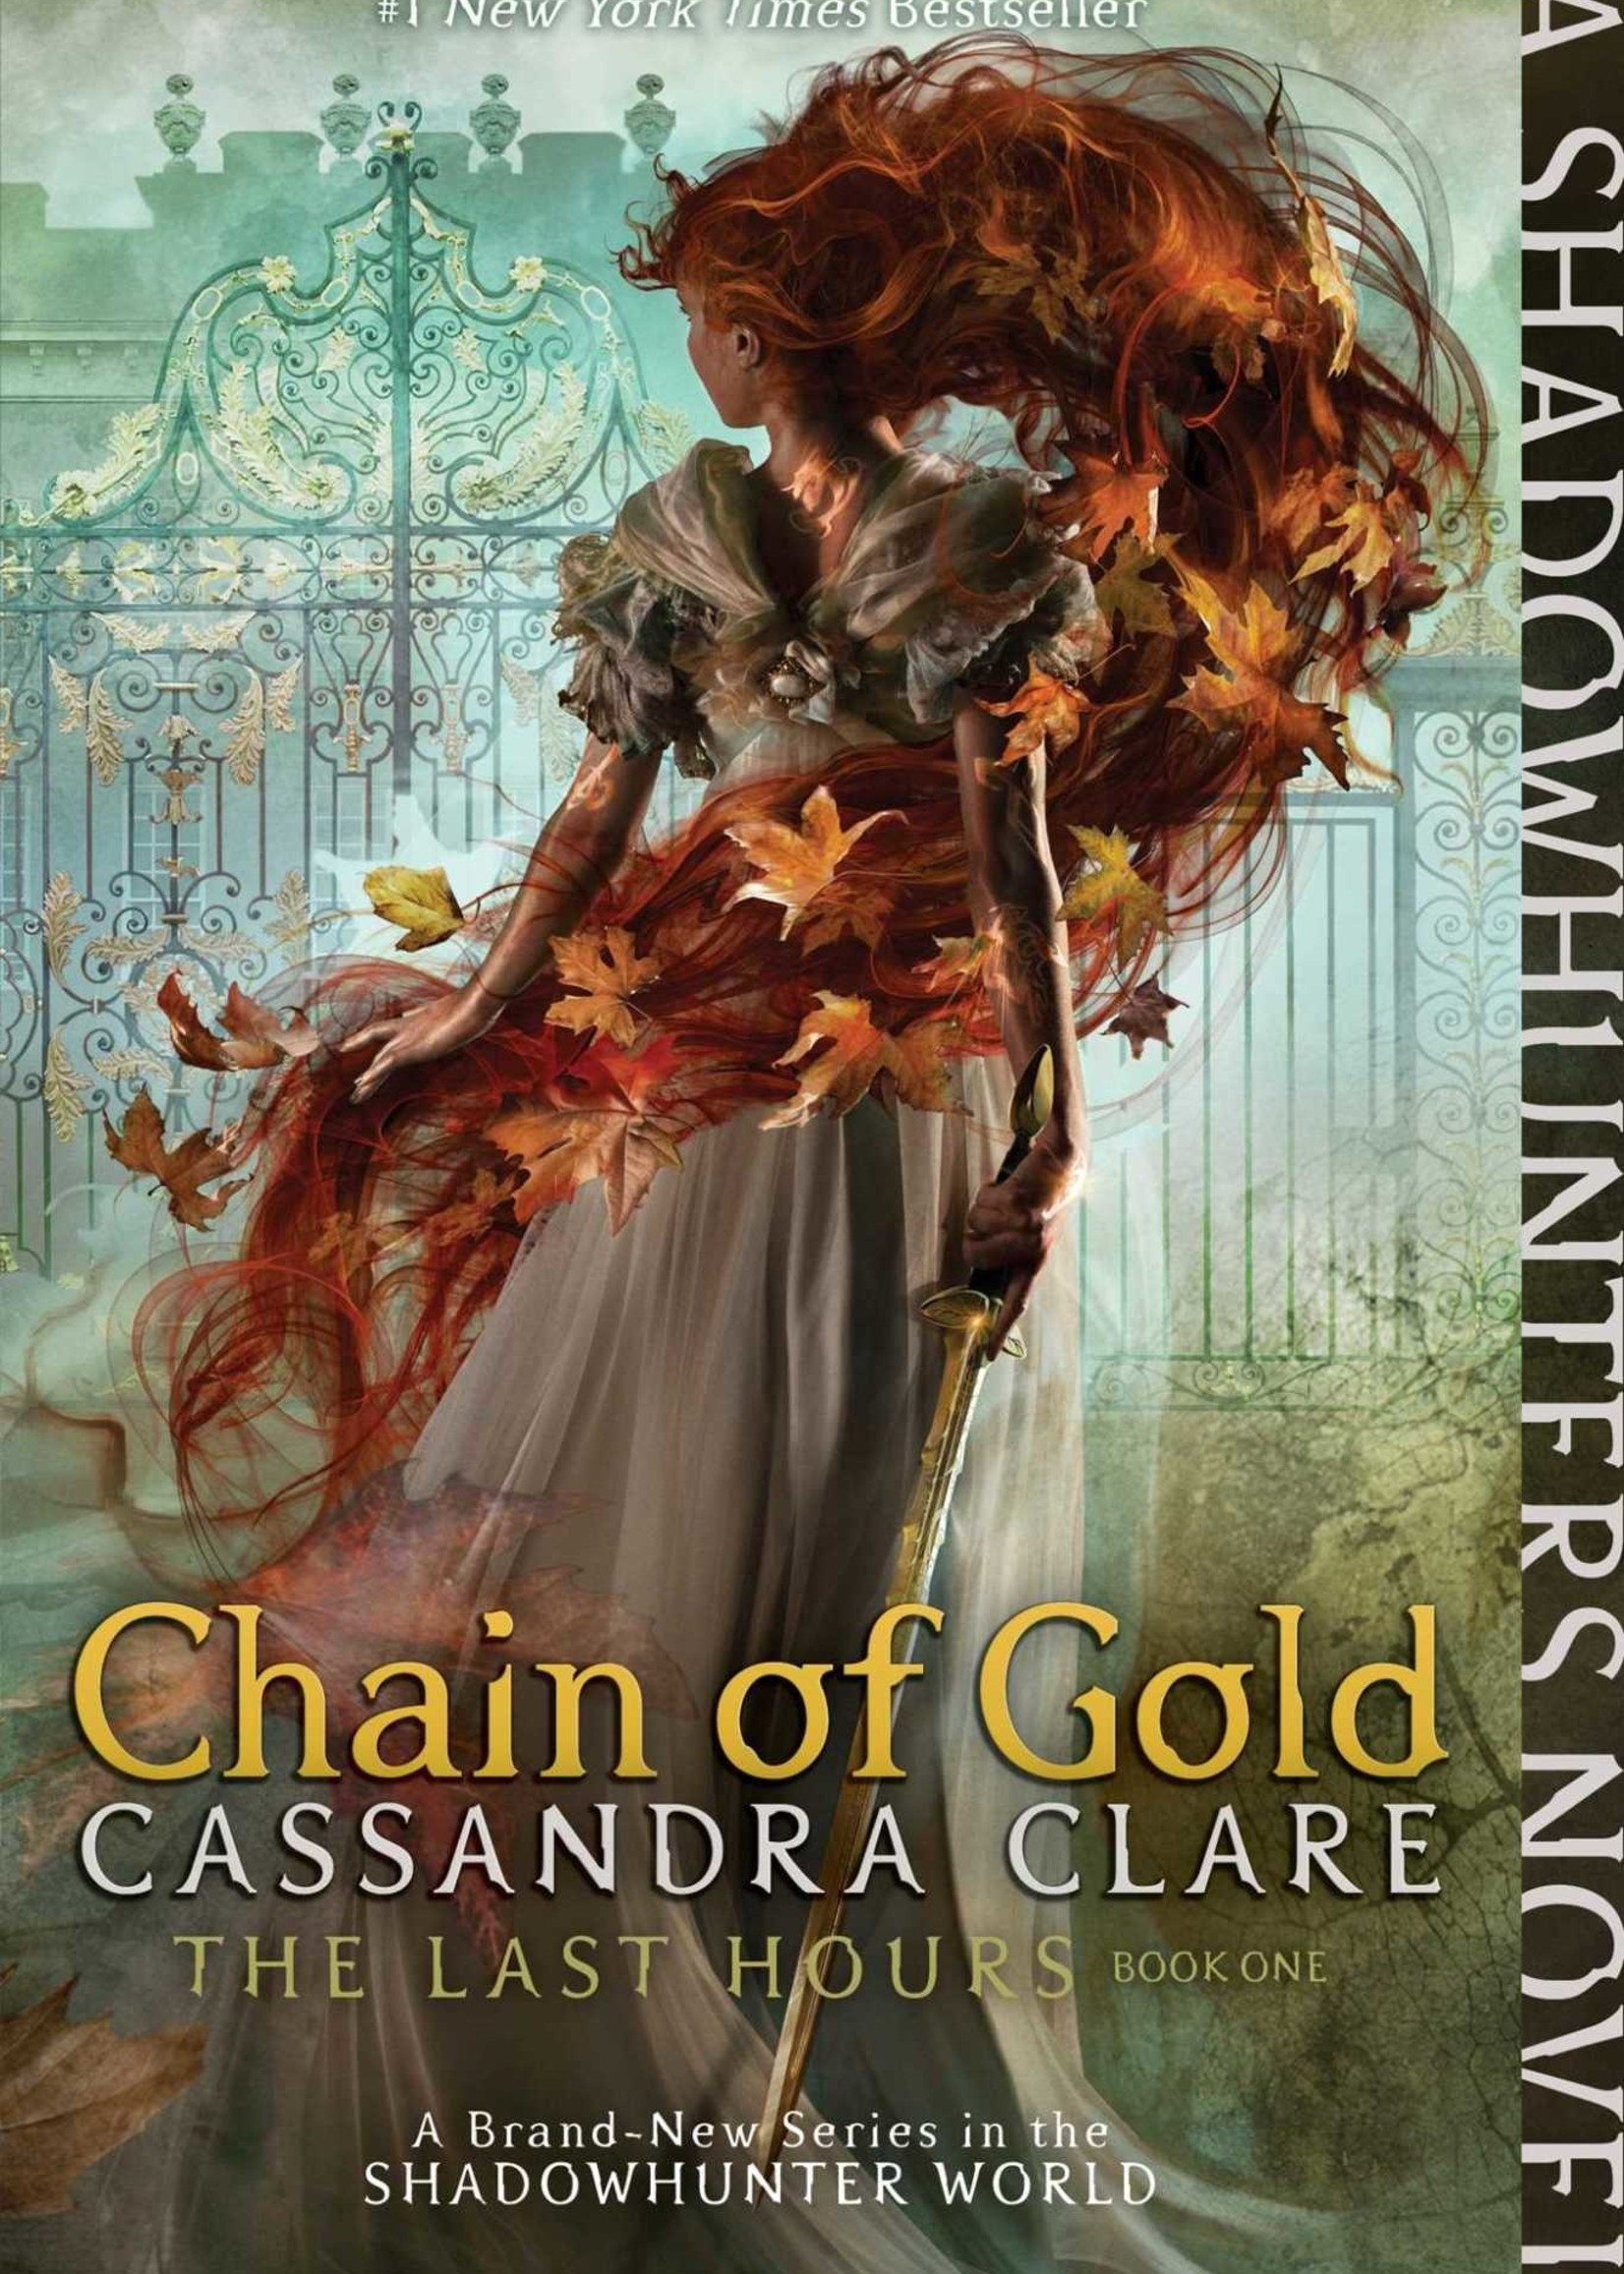 Chain of Gold (The Last Hours #1) by Cassandra Clare